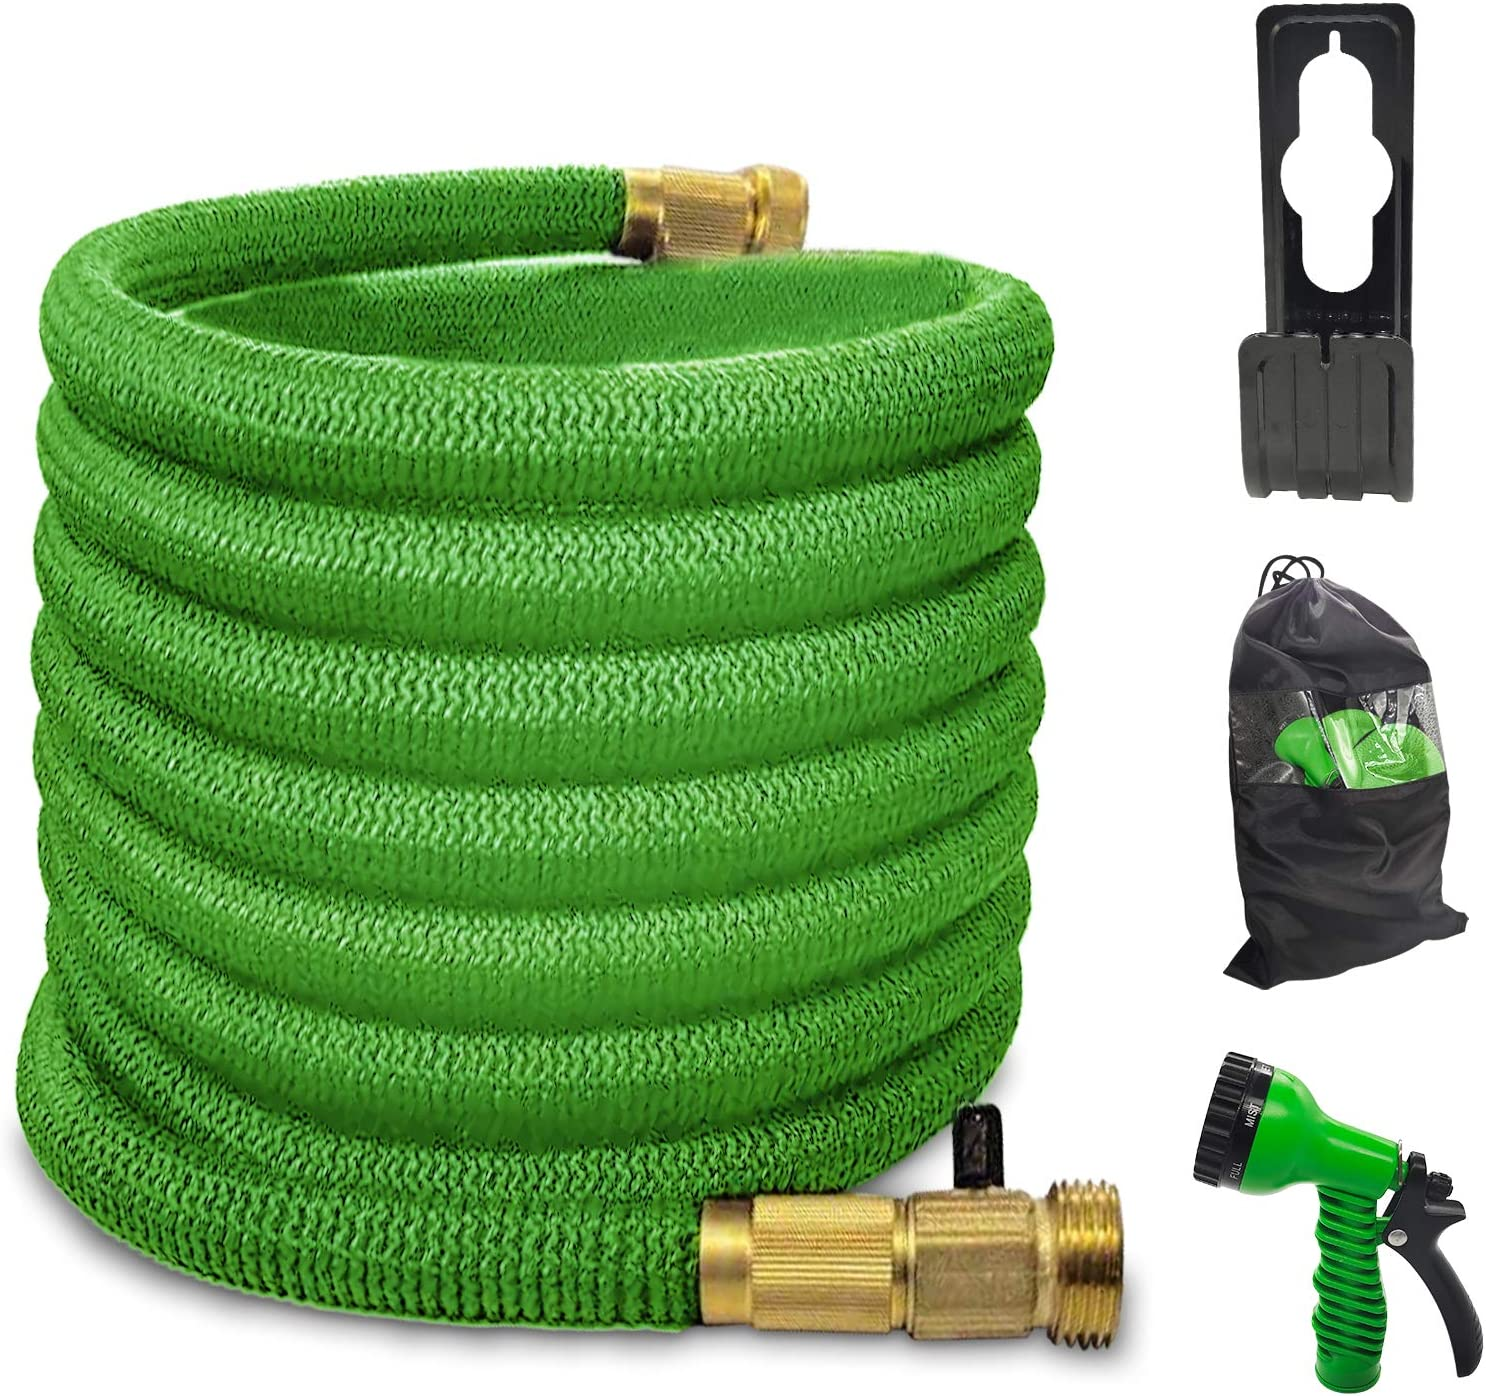 Yereen Expandable Garden Hose 50FT Flexible Collapsible Max 52% OFF Latex Under blast sales R